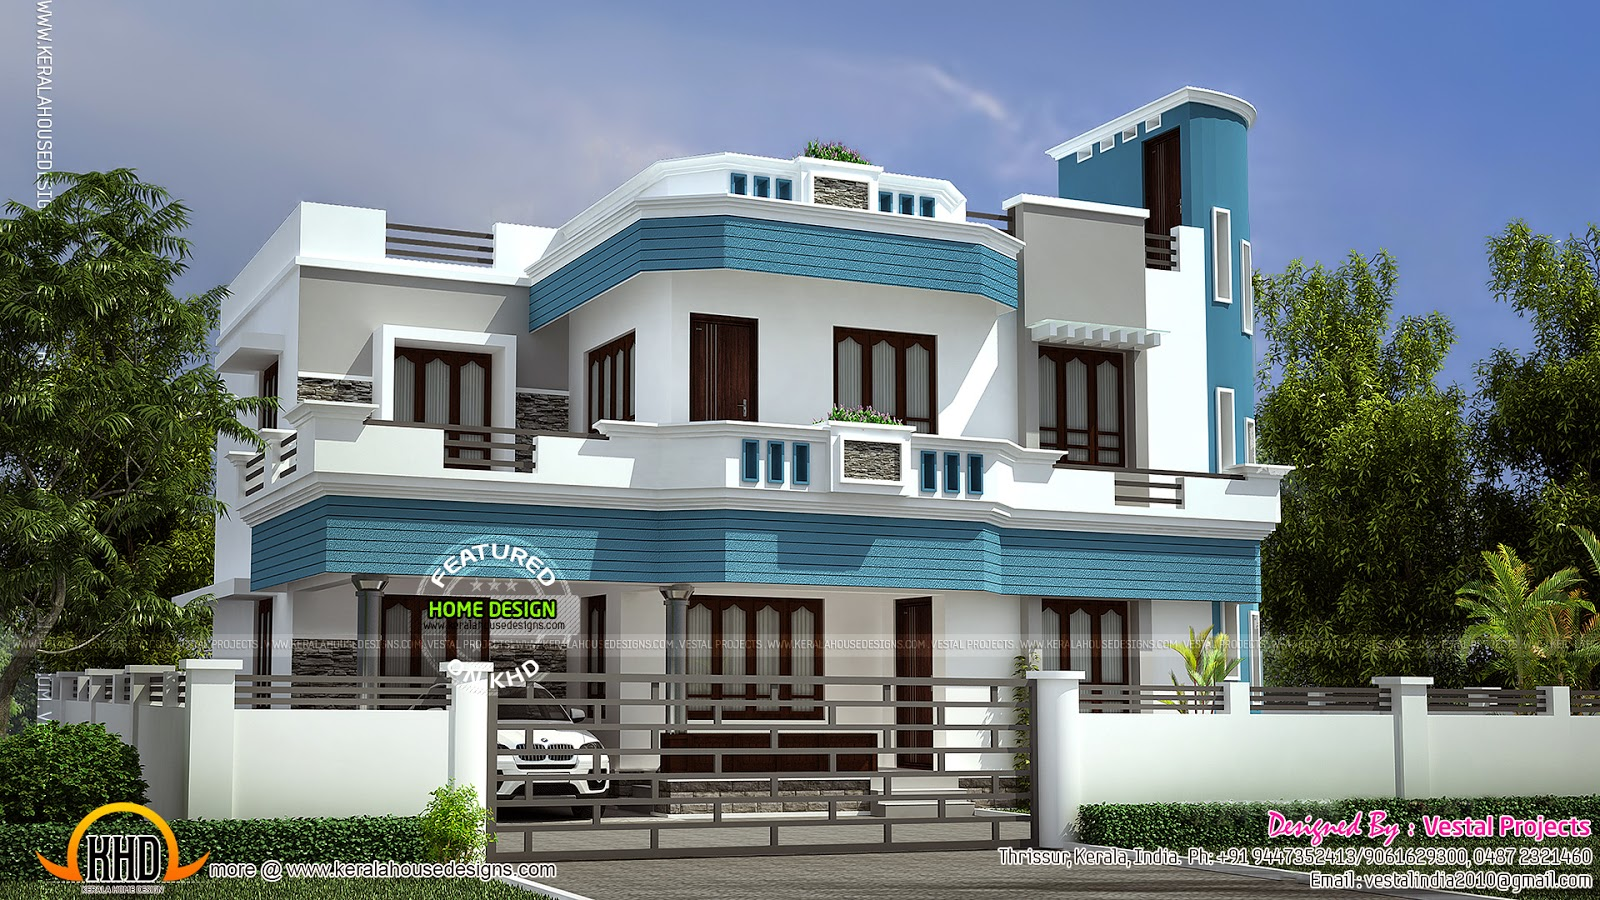 awesome house by vestal projects kerala home design and floor plans. Black Bedroom Furniture Sets. Home Design Ideas